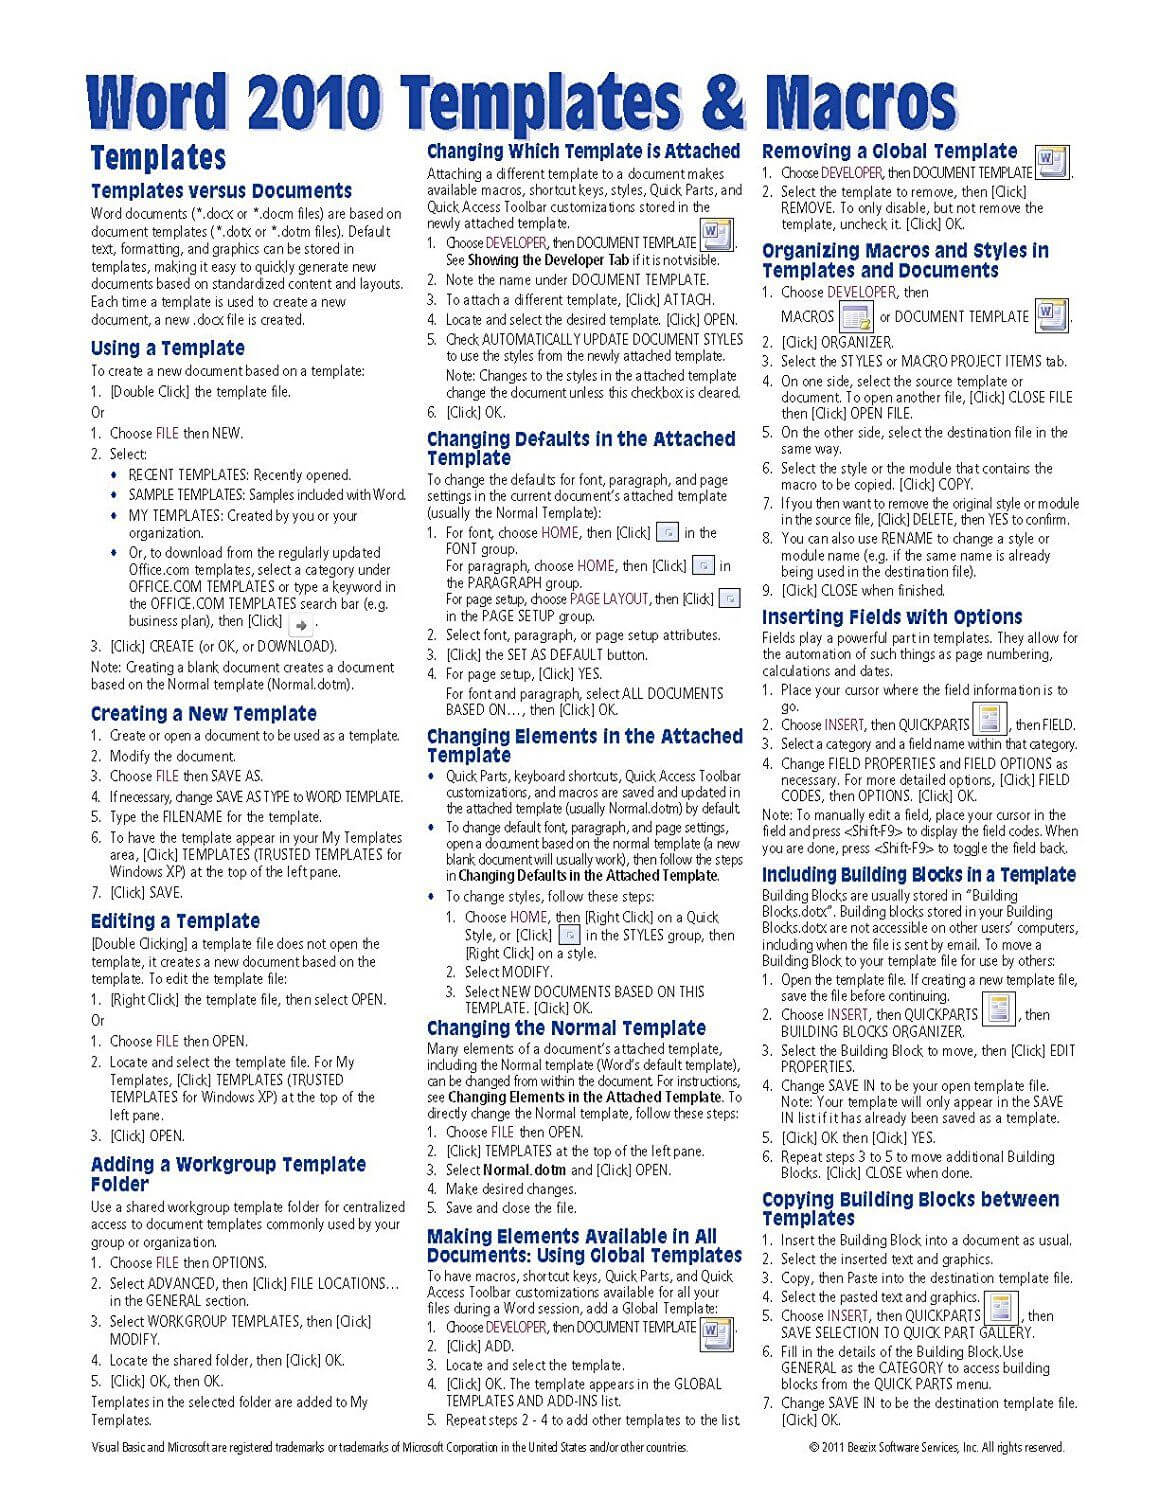 Microsoft Word 2010 Templates & Macros Quick Reference Guide Intended For Cheat Sheet Template Word